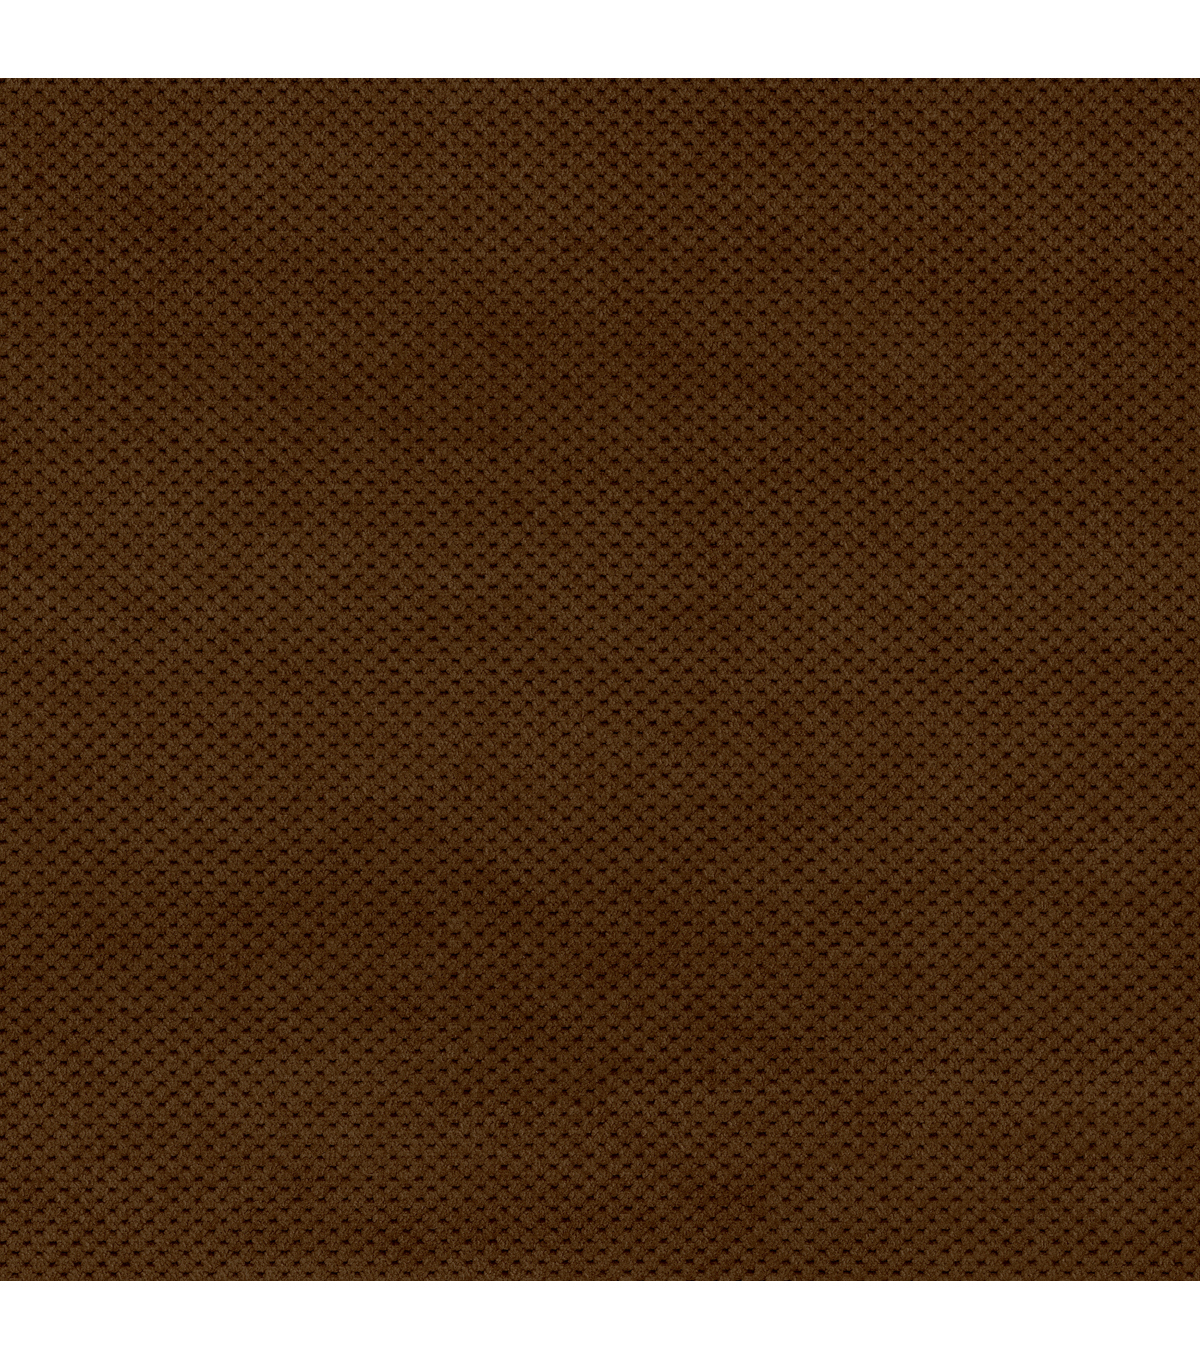 Home Decor 8\u0022x8\u0022 Fabric Swatch-Signature Series Griffin Charcoal